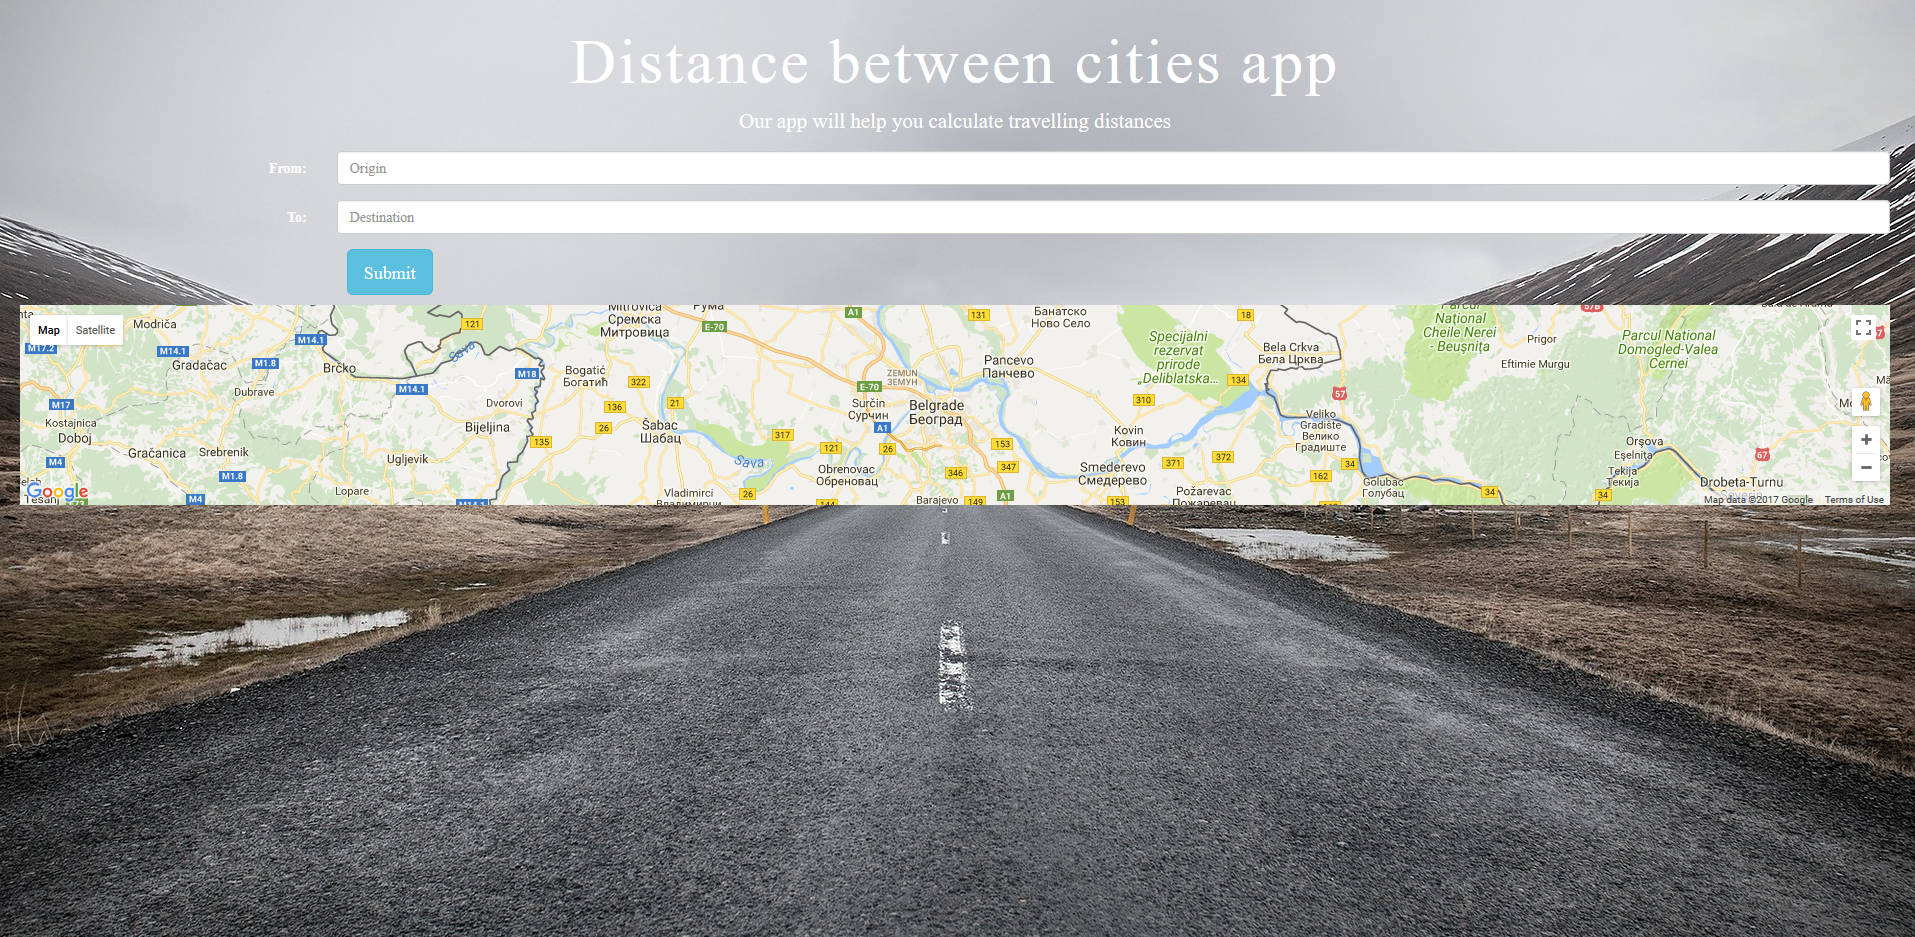 github tacic distance calculator calculates distance in km and